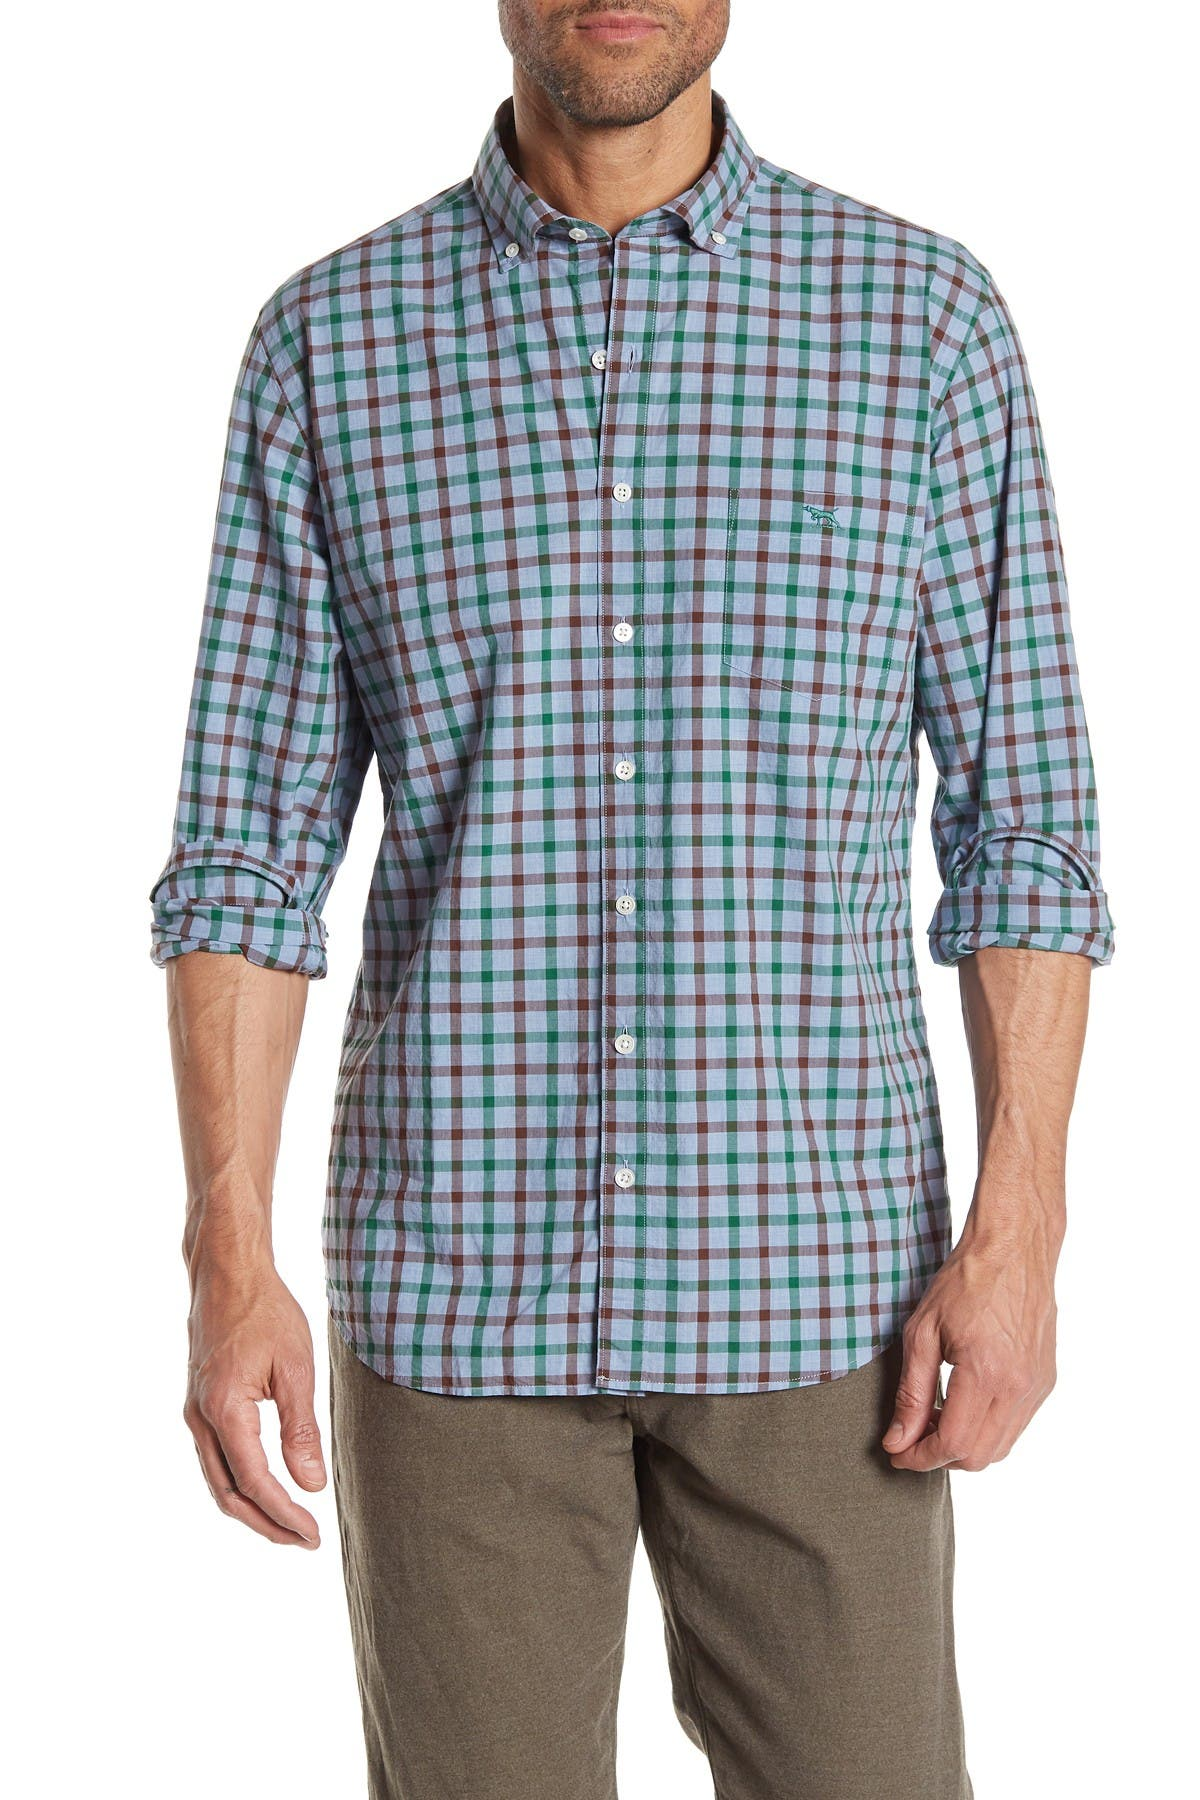 Image of RODD AND GUNN Hazlett Long Sleeve Button Front Shirt